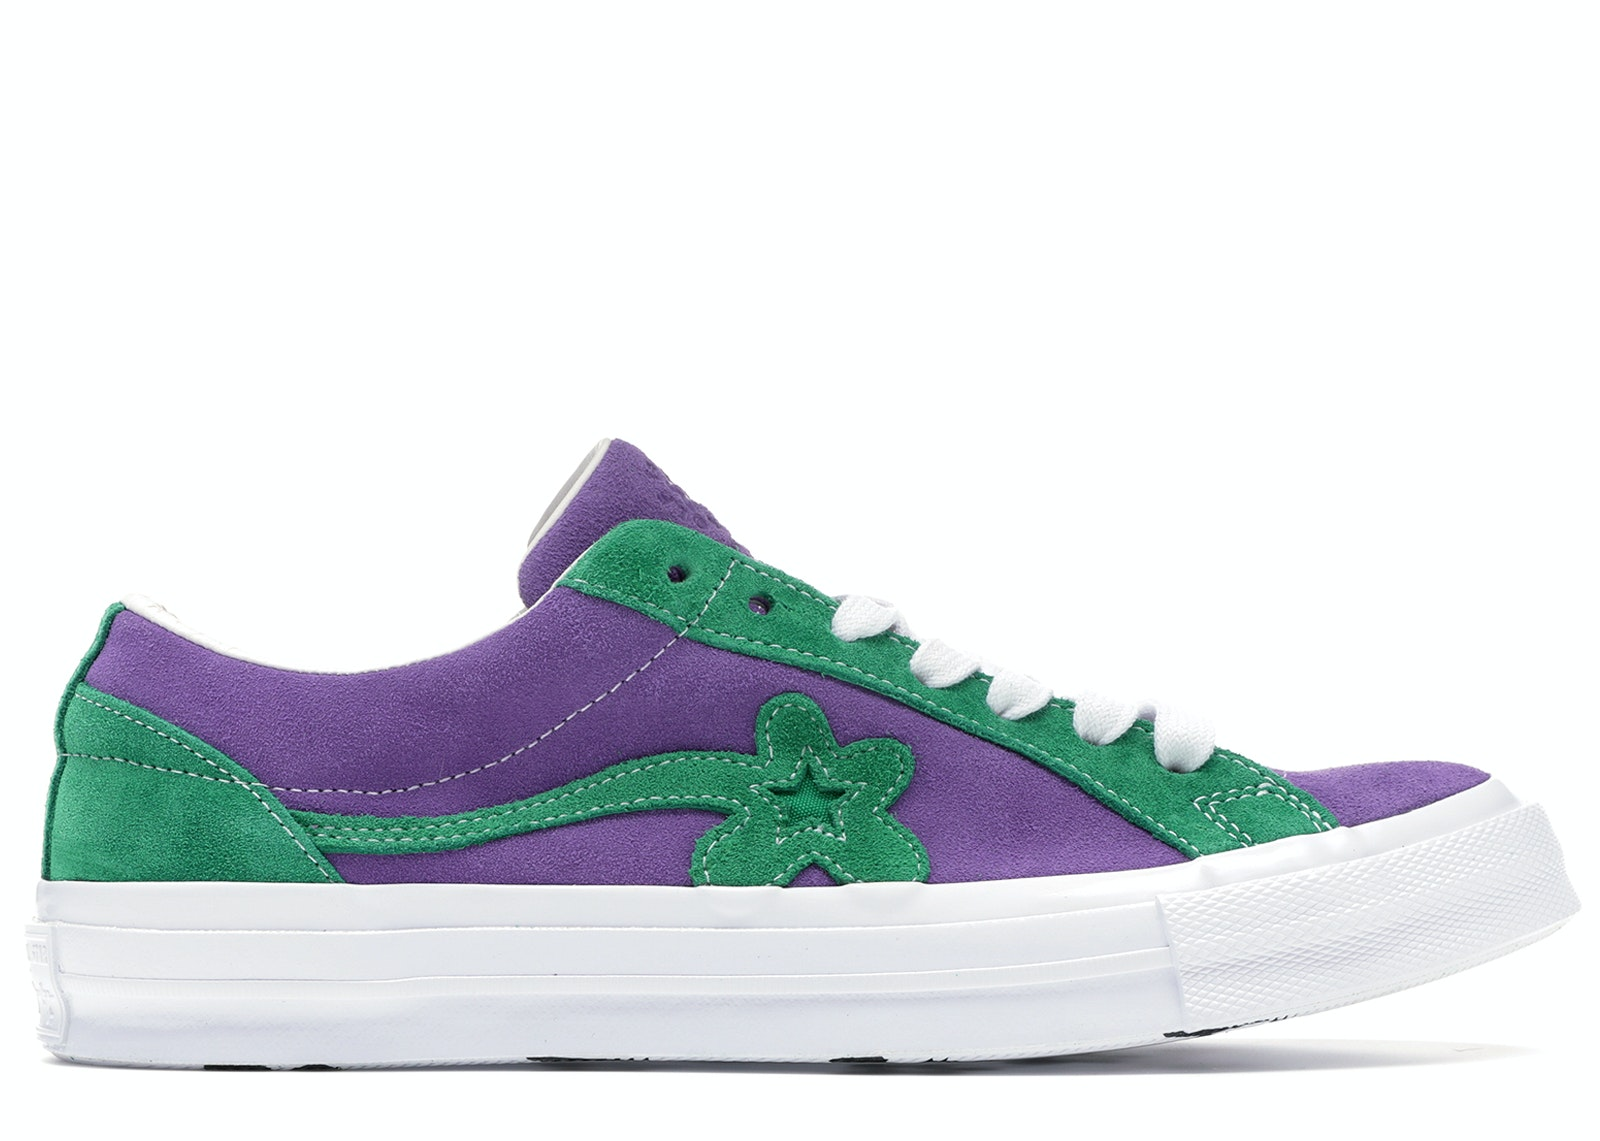 Converse One Star Ox Tyler the Creator Golf Le Fleur Purple Green